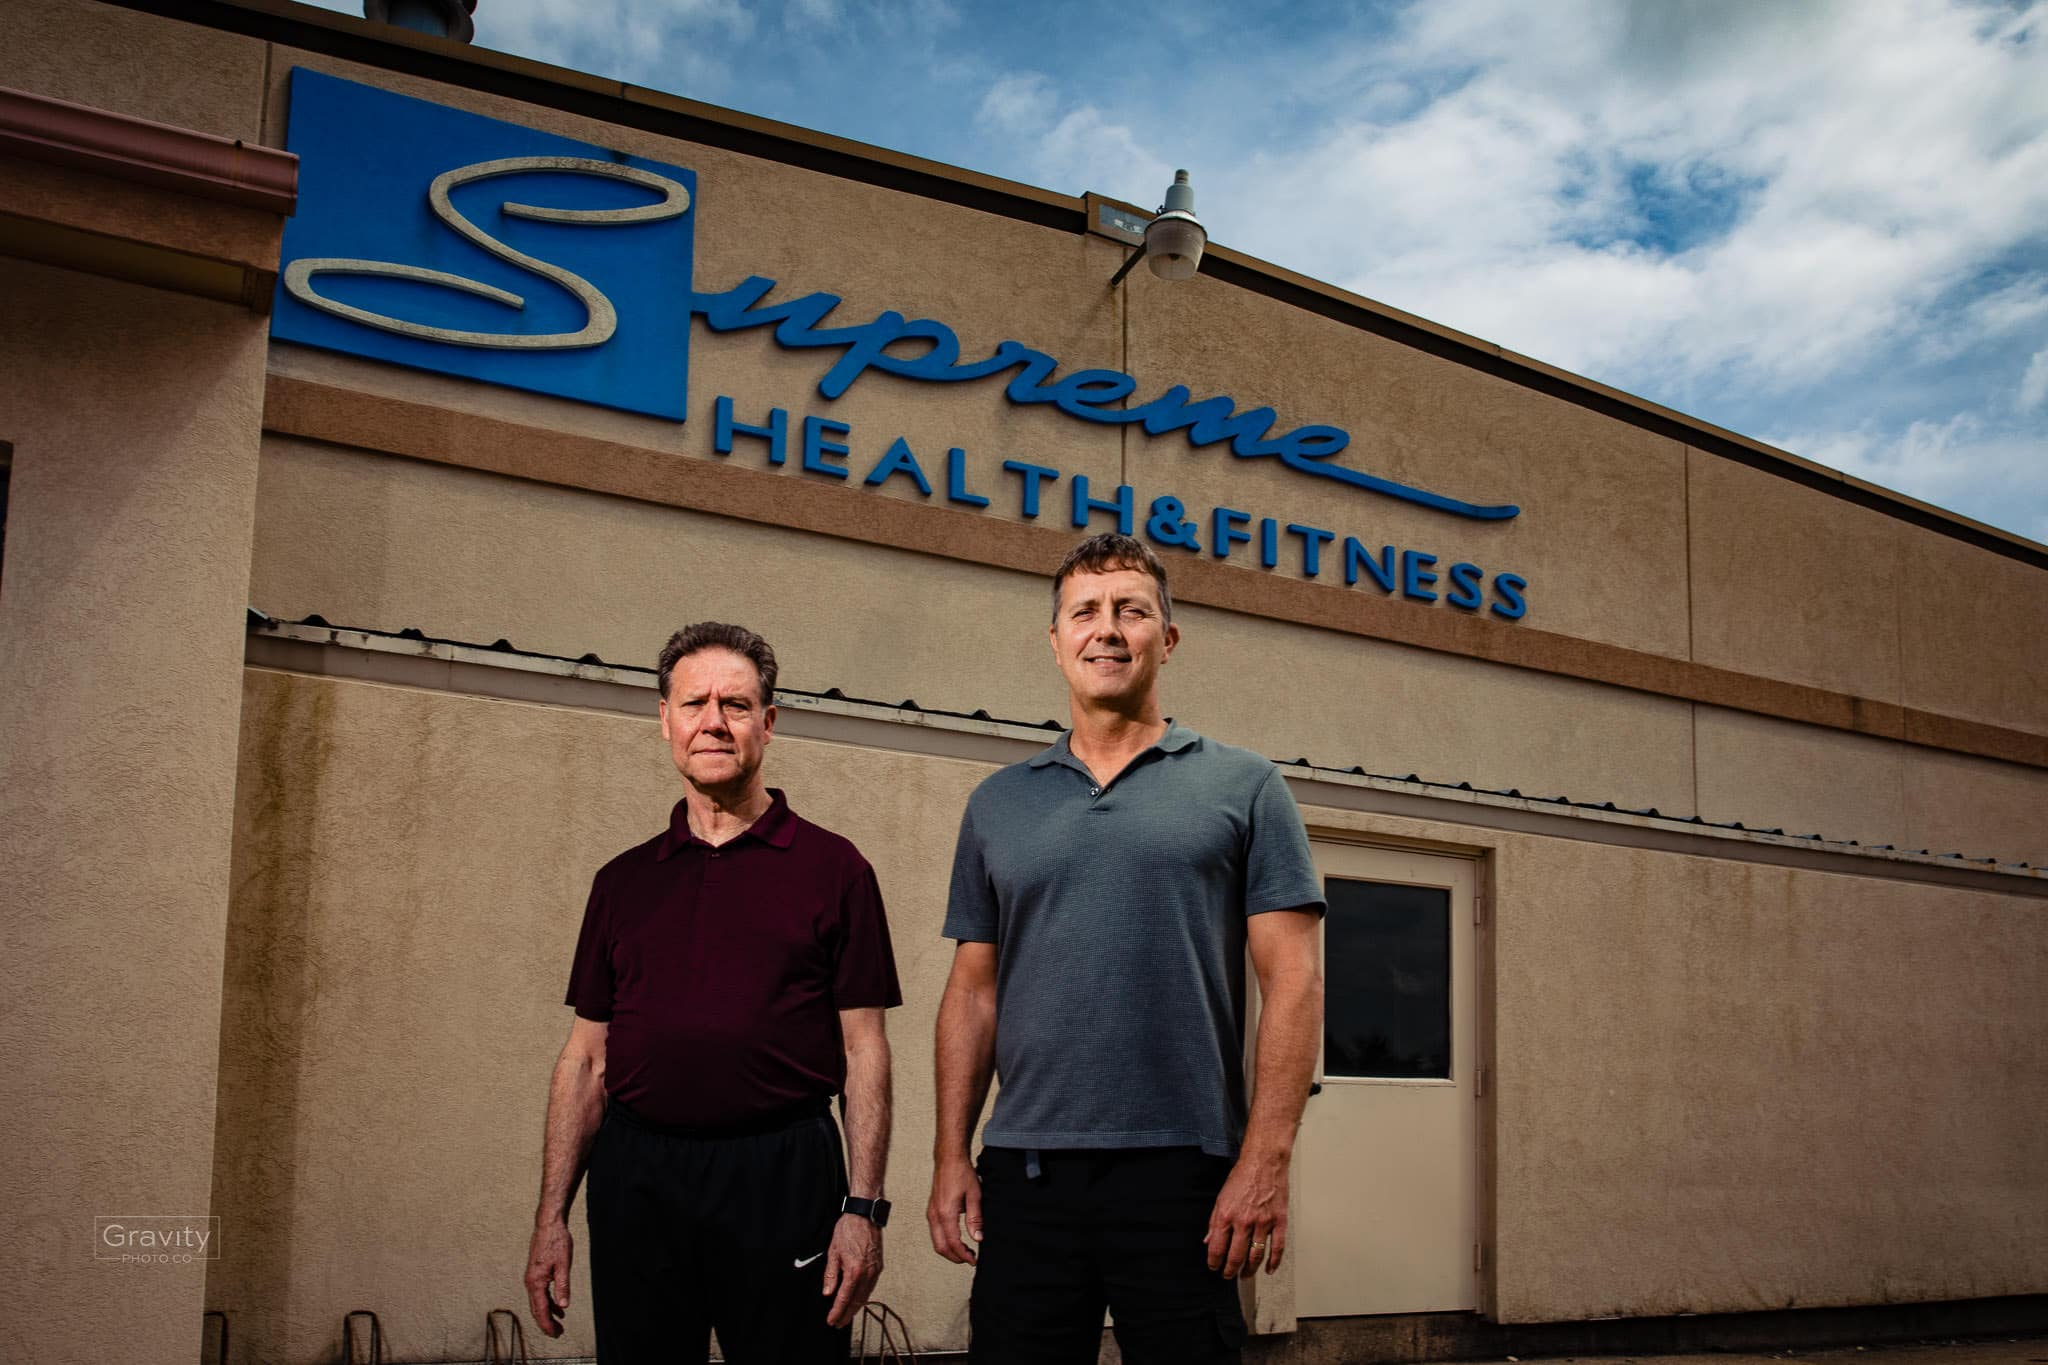 Joe Wirkus and Howie Grigg in front of their club, Supreme Health and Fitness